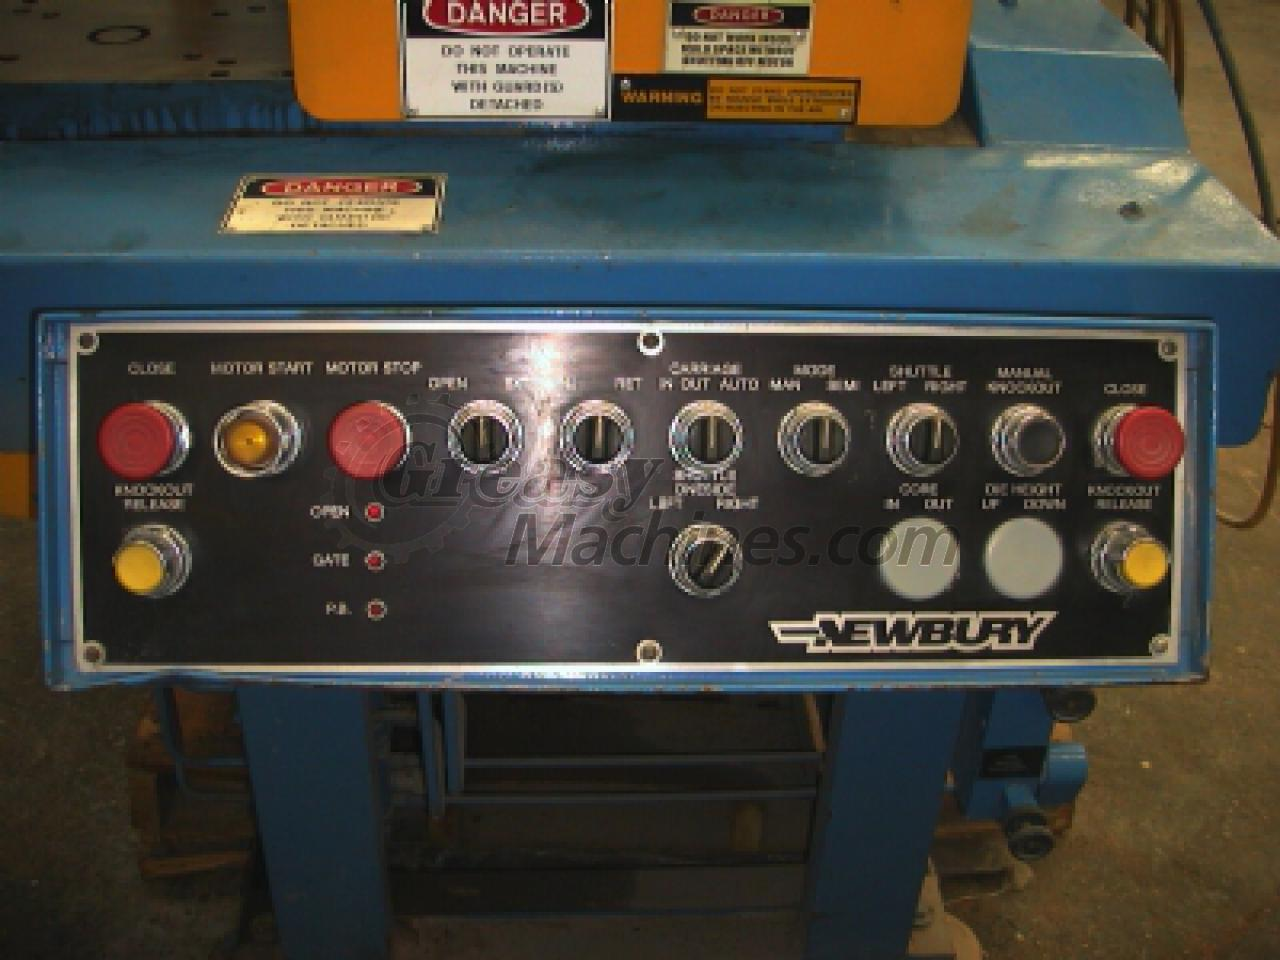 Newbury 30 ton, 4 oz shuttle injection molder